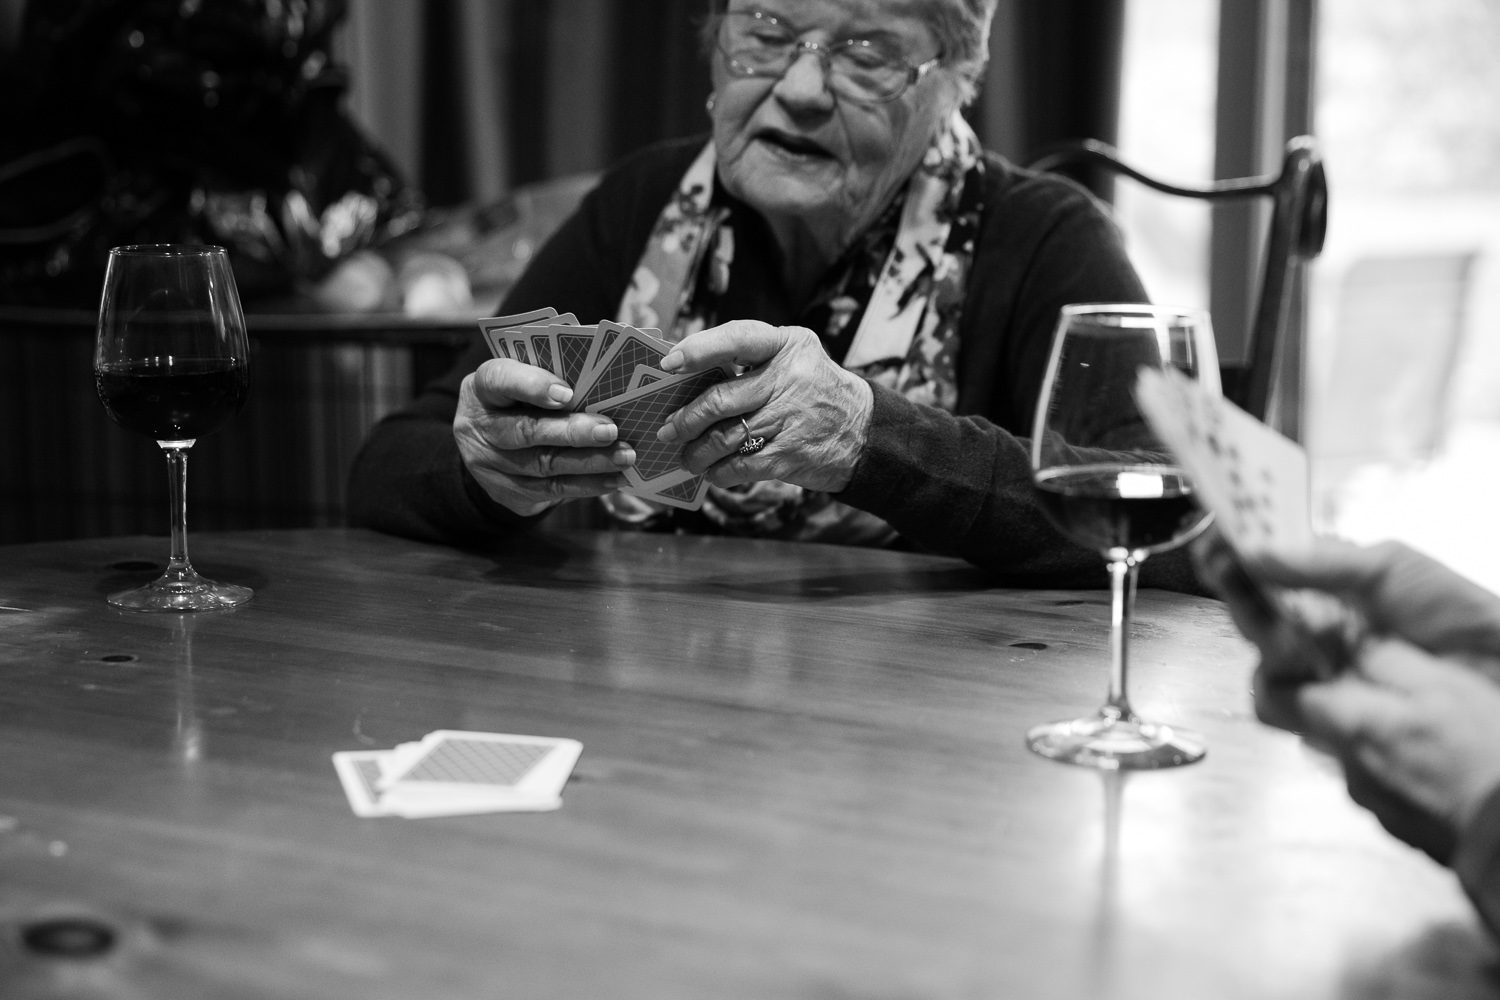 Four generations of women and their love of cards.  Storytelling photography.